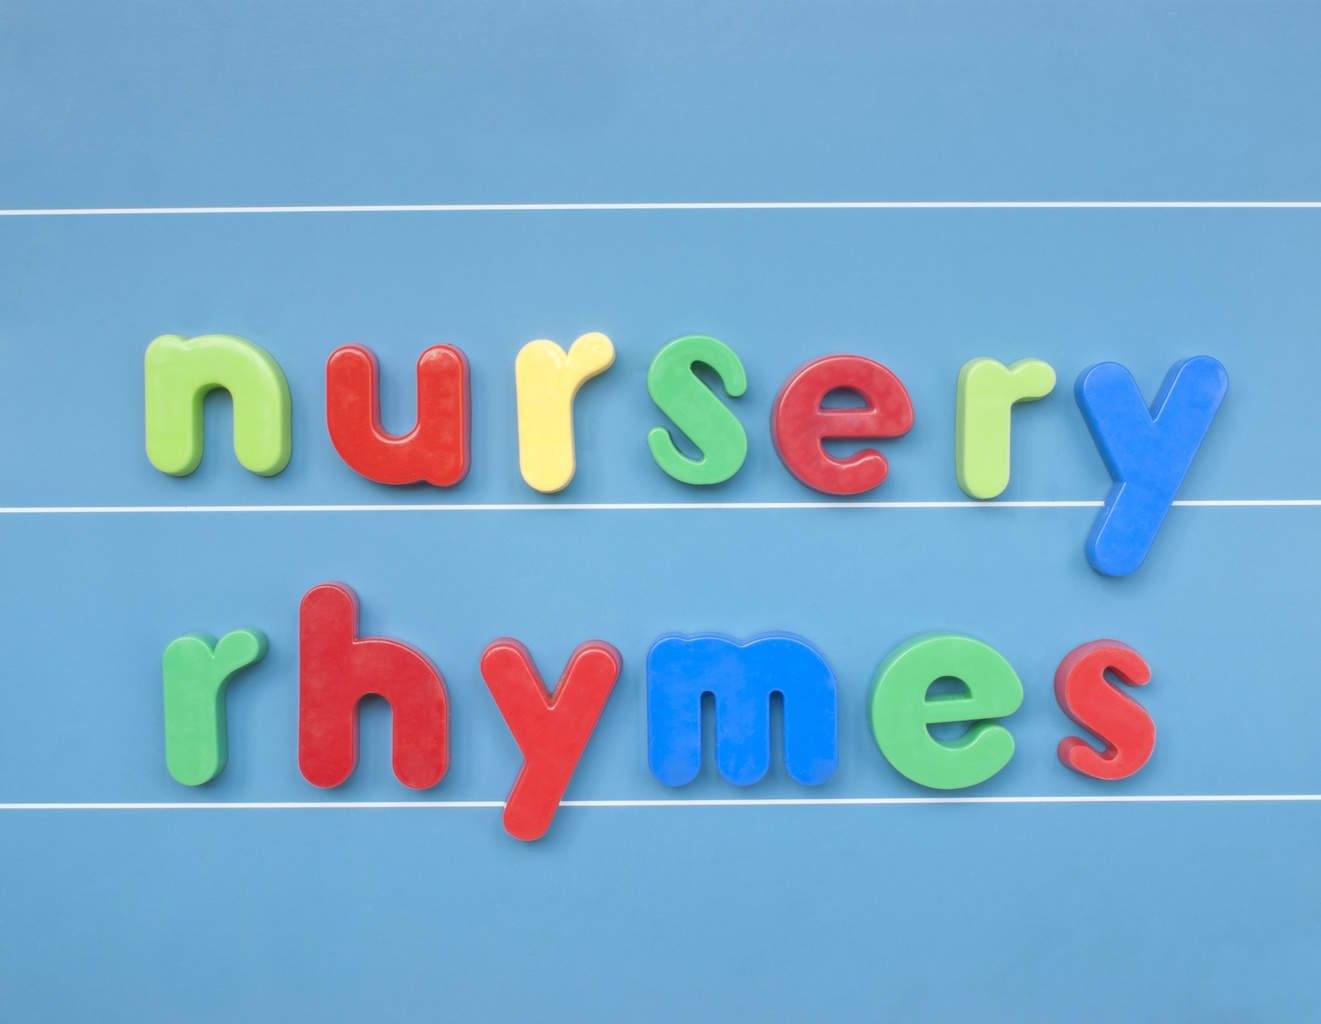 Colorful magnetic letter spelling nursery rhymes on blue board